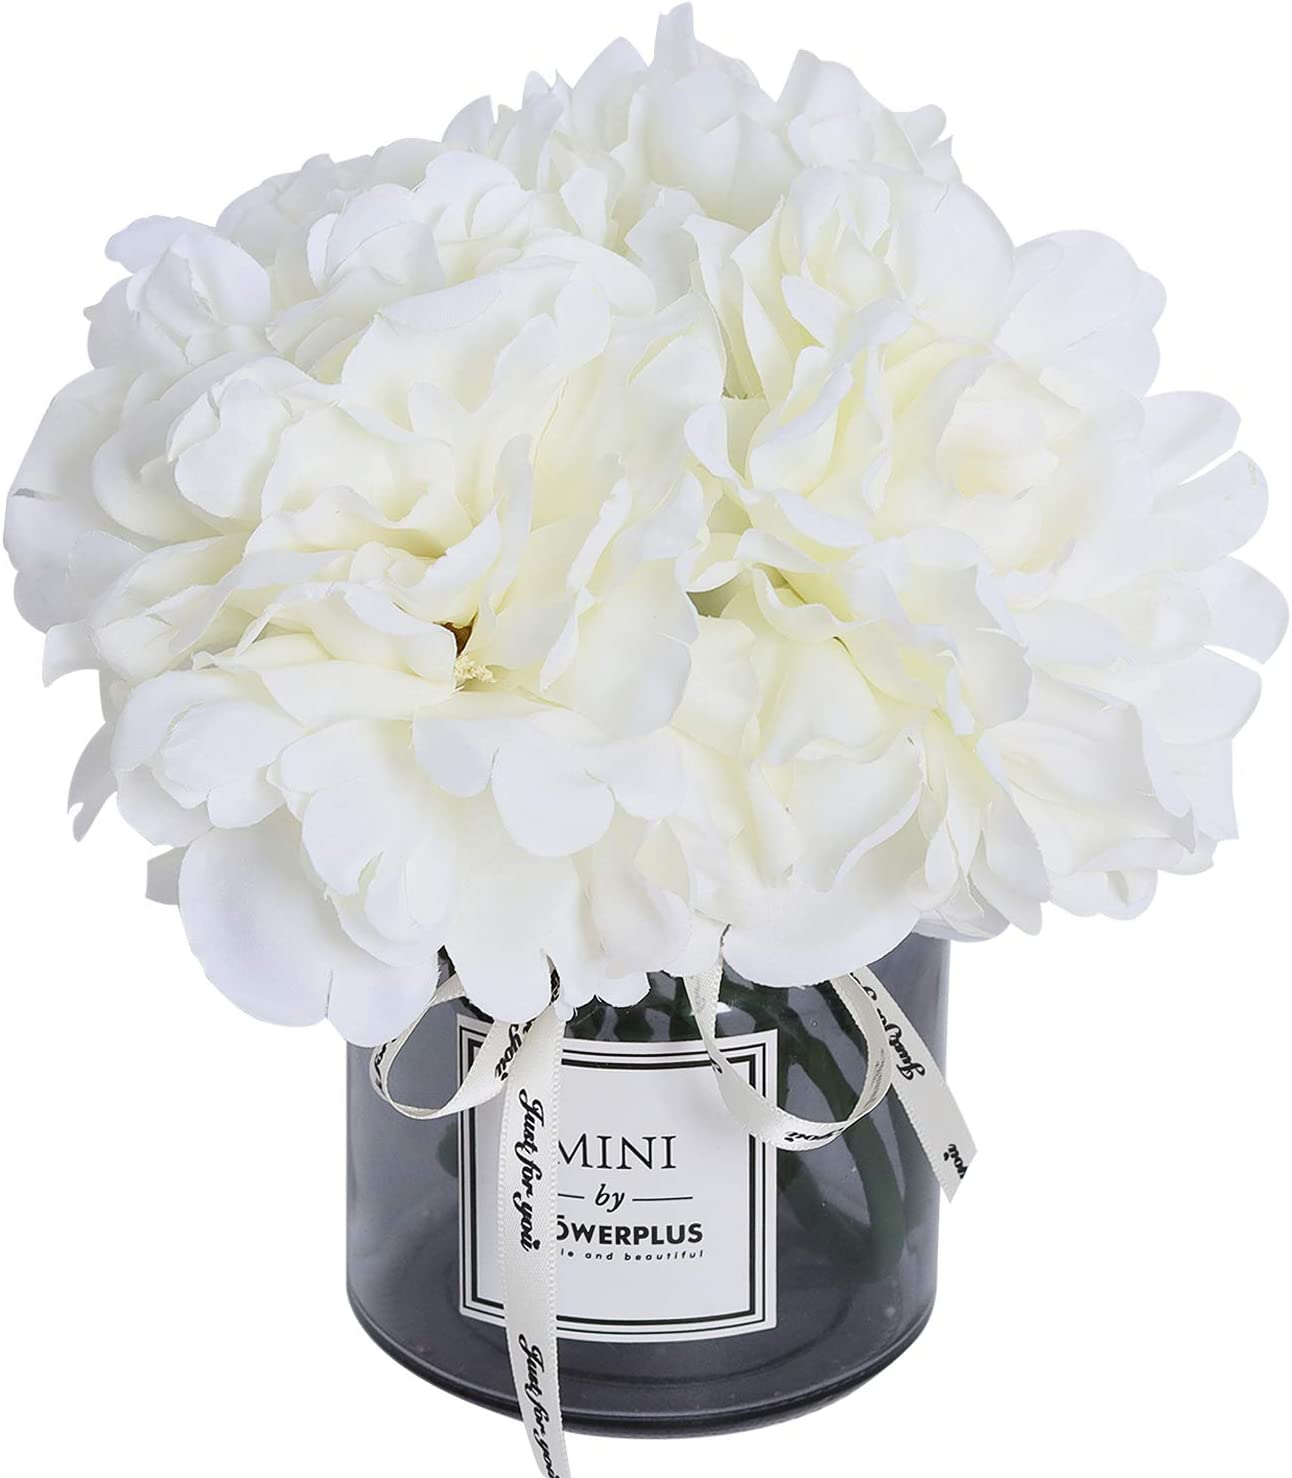 Artificial Hydrangea and Glass vase Decoration, Ins Style Artificial Flower Glass Bottle Set, Suitable for Living Room, Dining Table, Office, Wedding, Hotel Banquet and Other Home Decoration. (Beige)…